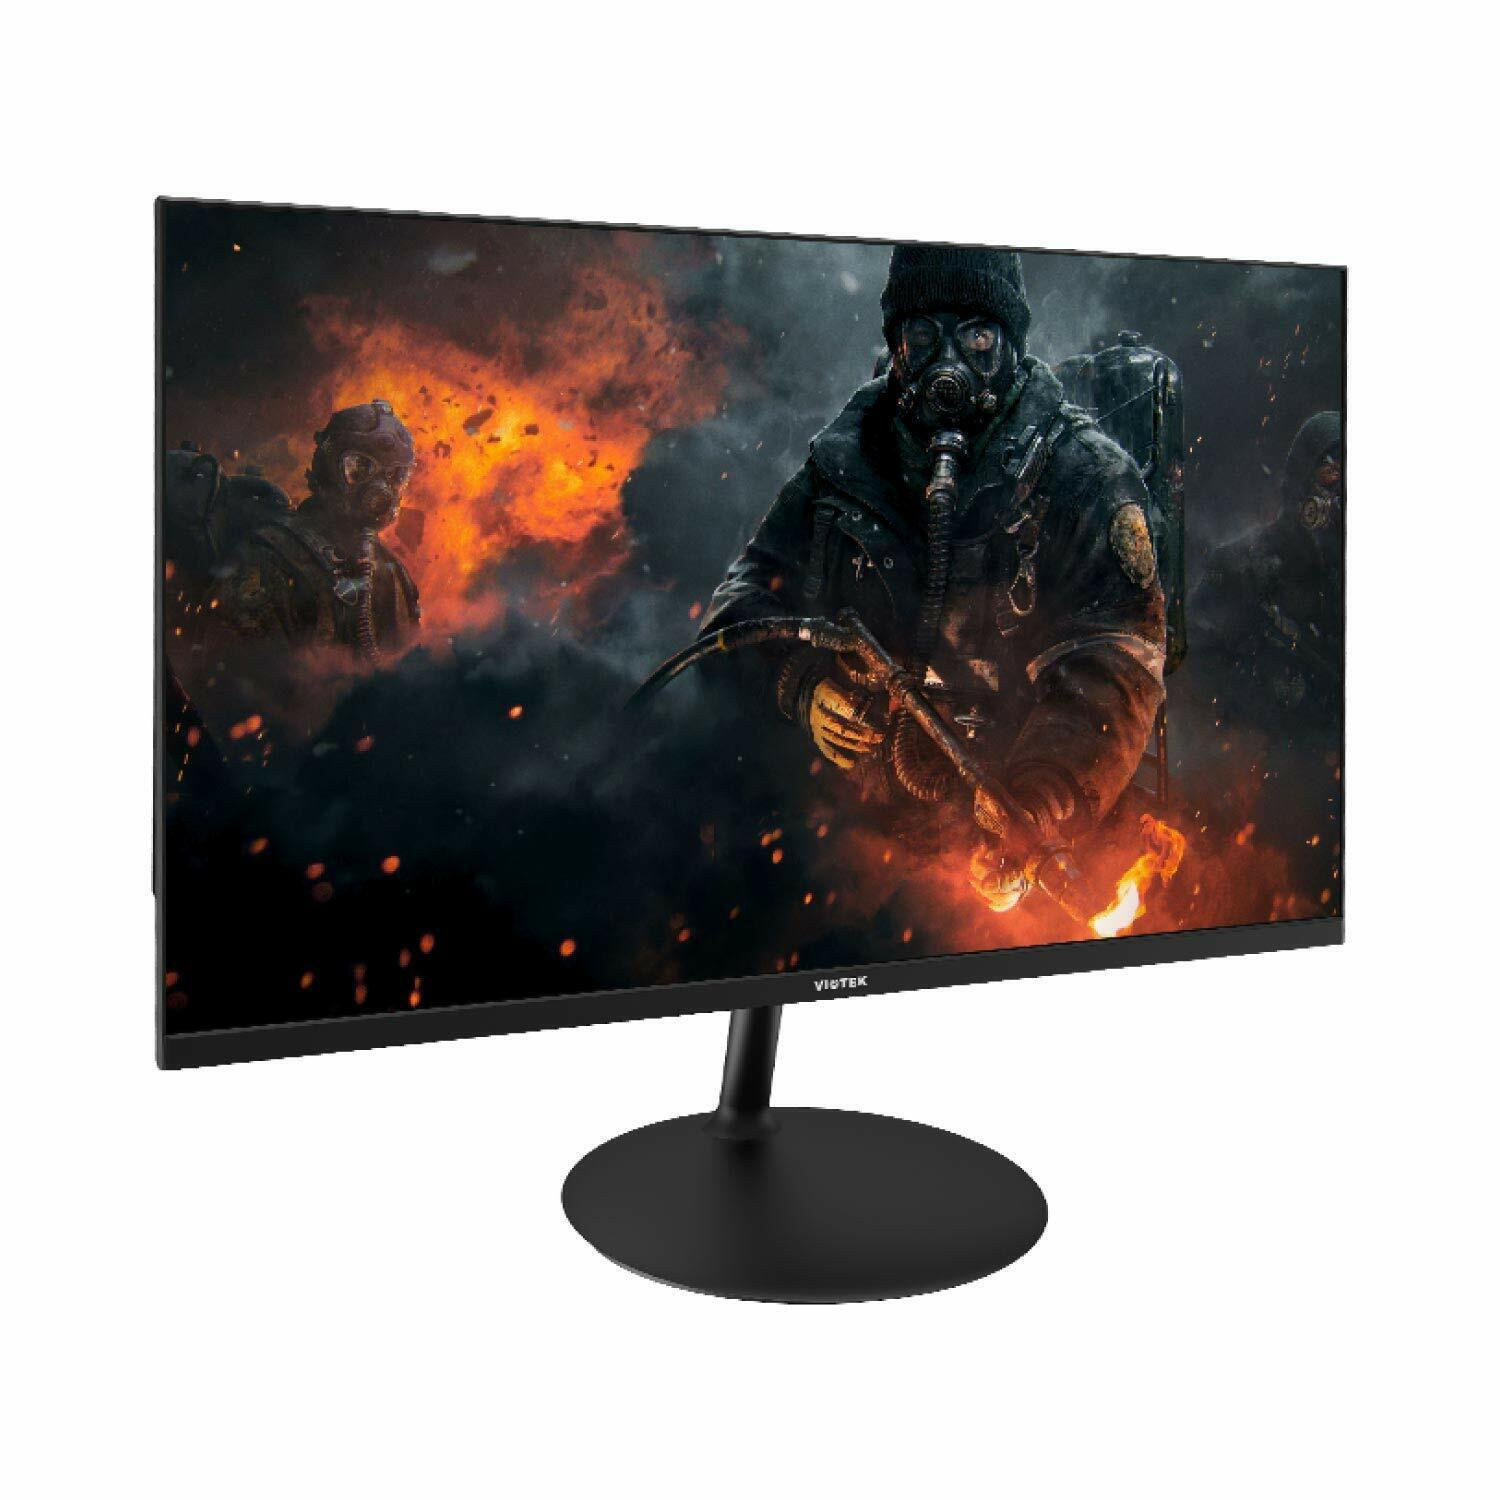 1440P 144Hz Monitor viotek gfv24c 24inch ultra-thin 144hz gaming monitor 1080p